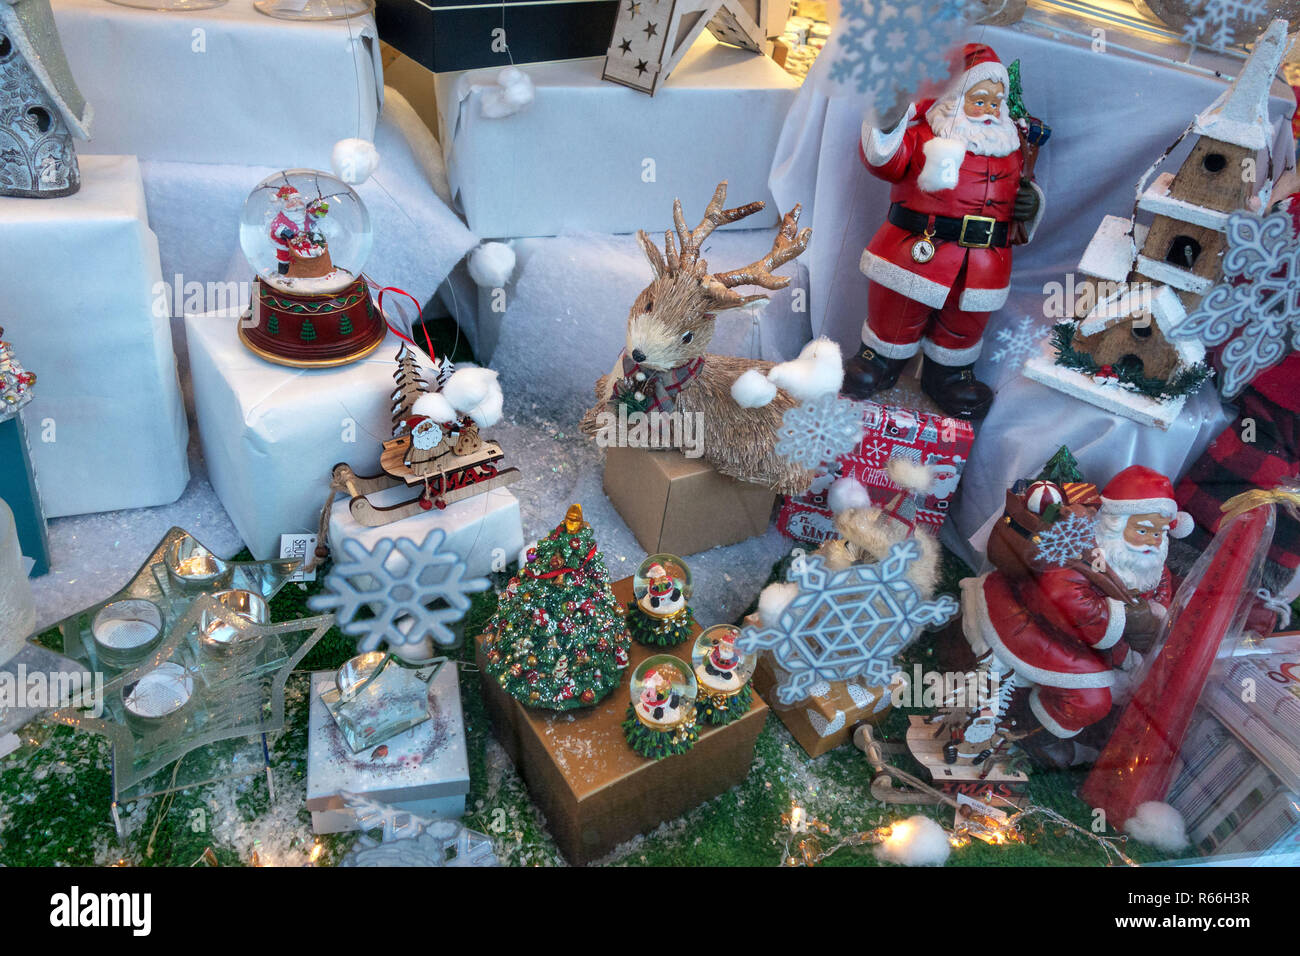 Christmas Gift Ideas In A Small Shop Window In Dinnington Rotherham South Yorkshire England Stock Photo Alamy